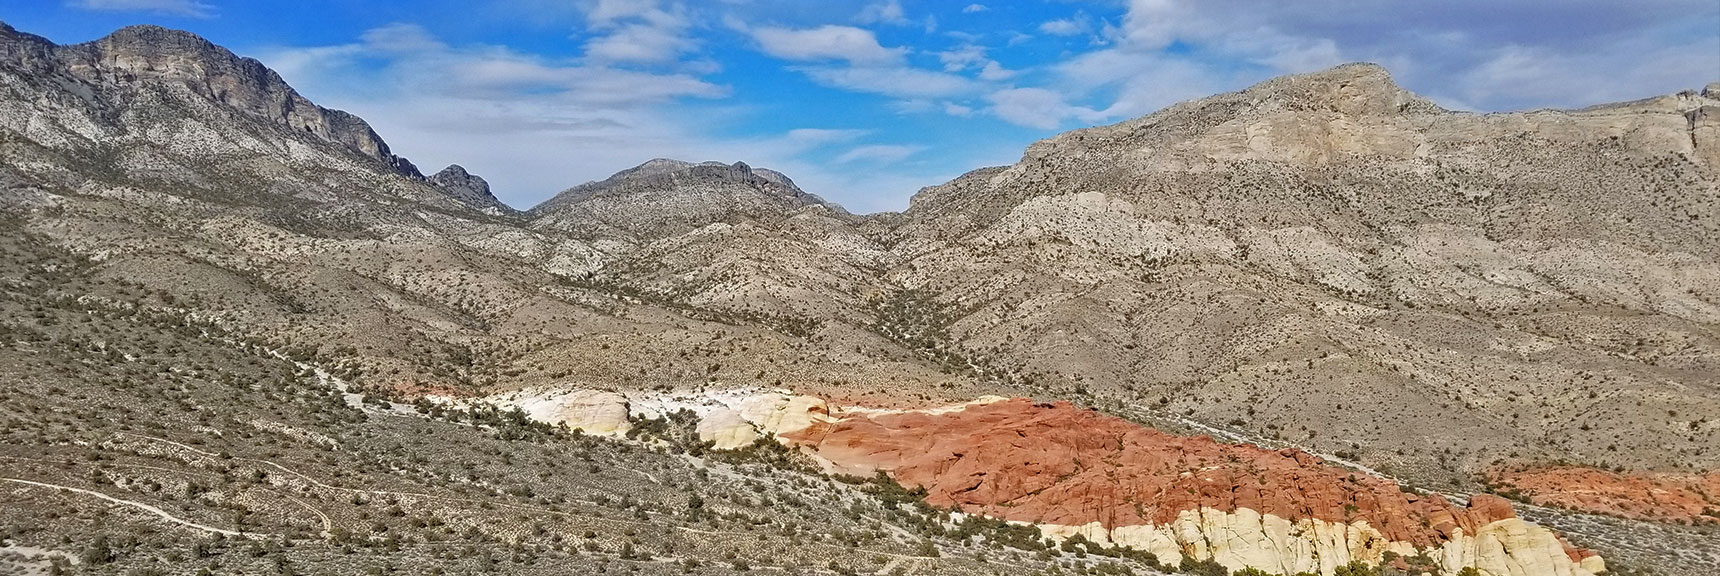 Upper Calico Hills and Damsel Peak in Calico Basin, Nevada